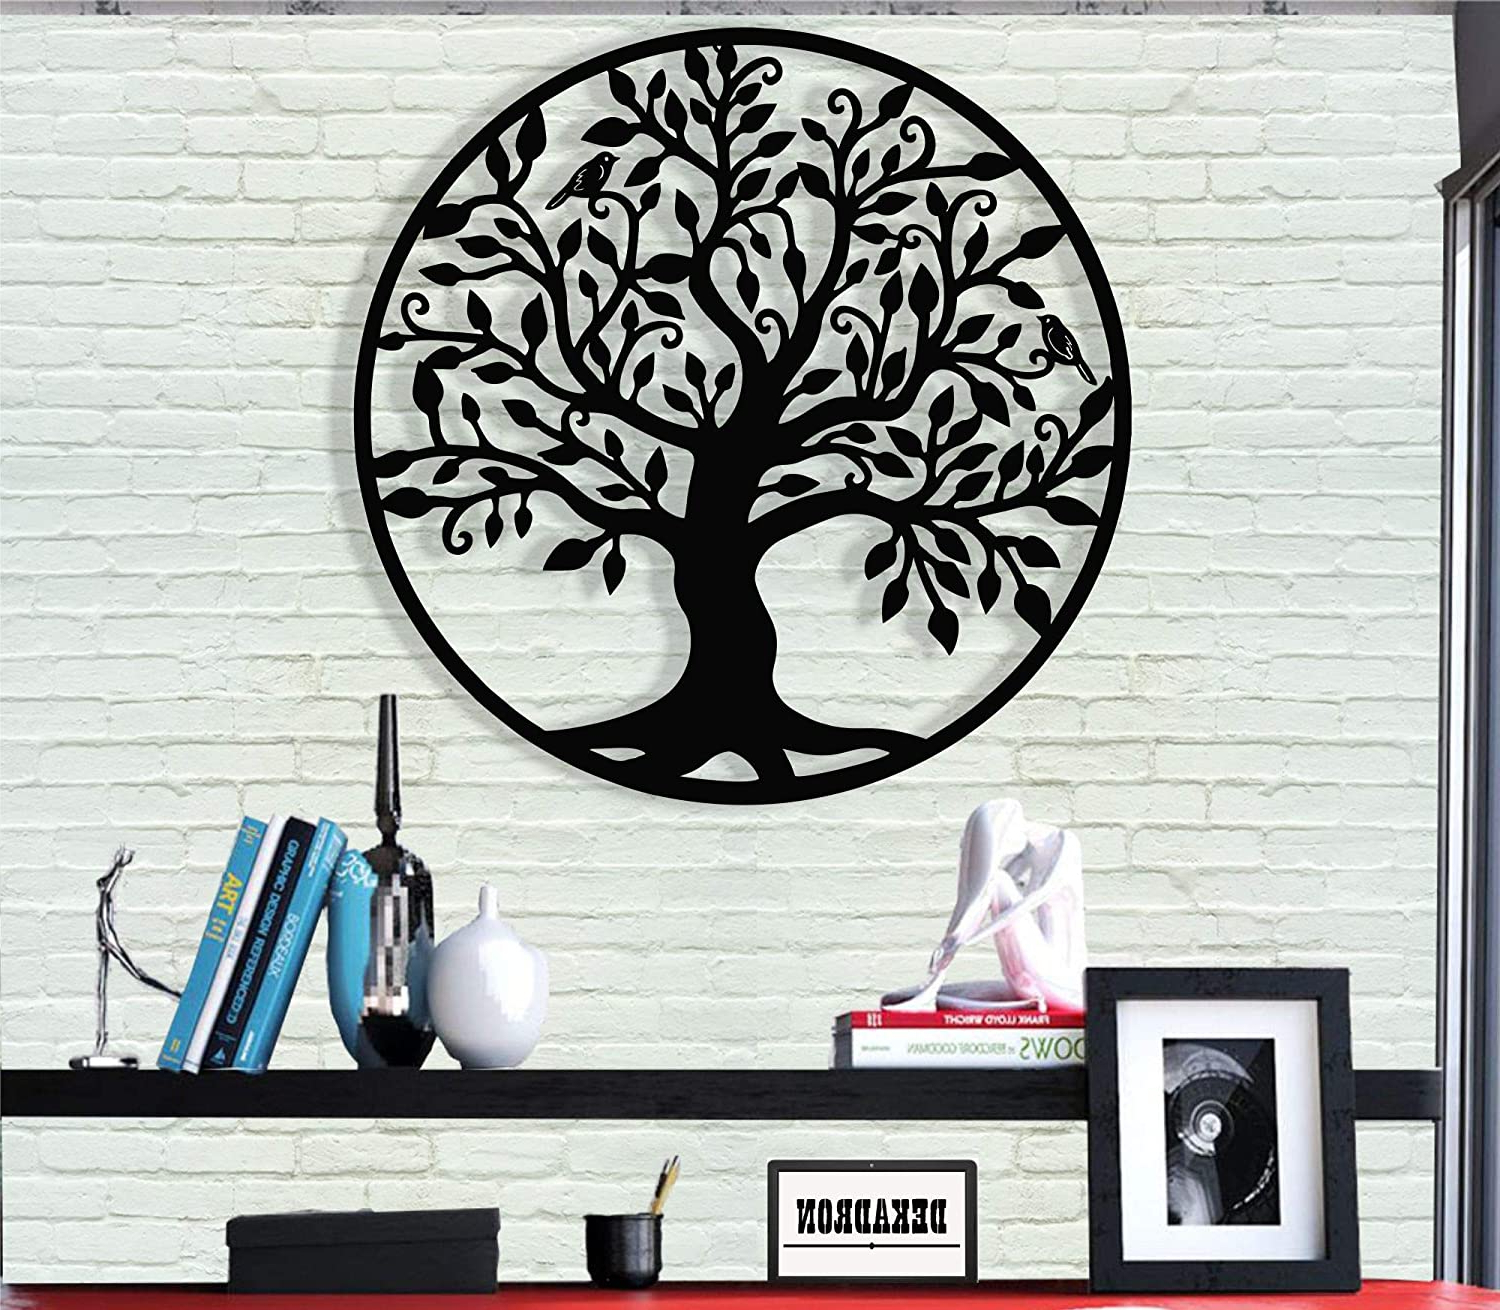 Best And Newest Dekadron Metal Wall Art – Tree Of Life – Family Tree – 3d Wall Silhouette Metal Wall Decor Home Office Decoration Bedroom Living Room Decor Sculpture Pertaining To Family Themed Creative Metal Wall Décor (View 8 of 20)